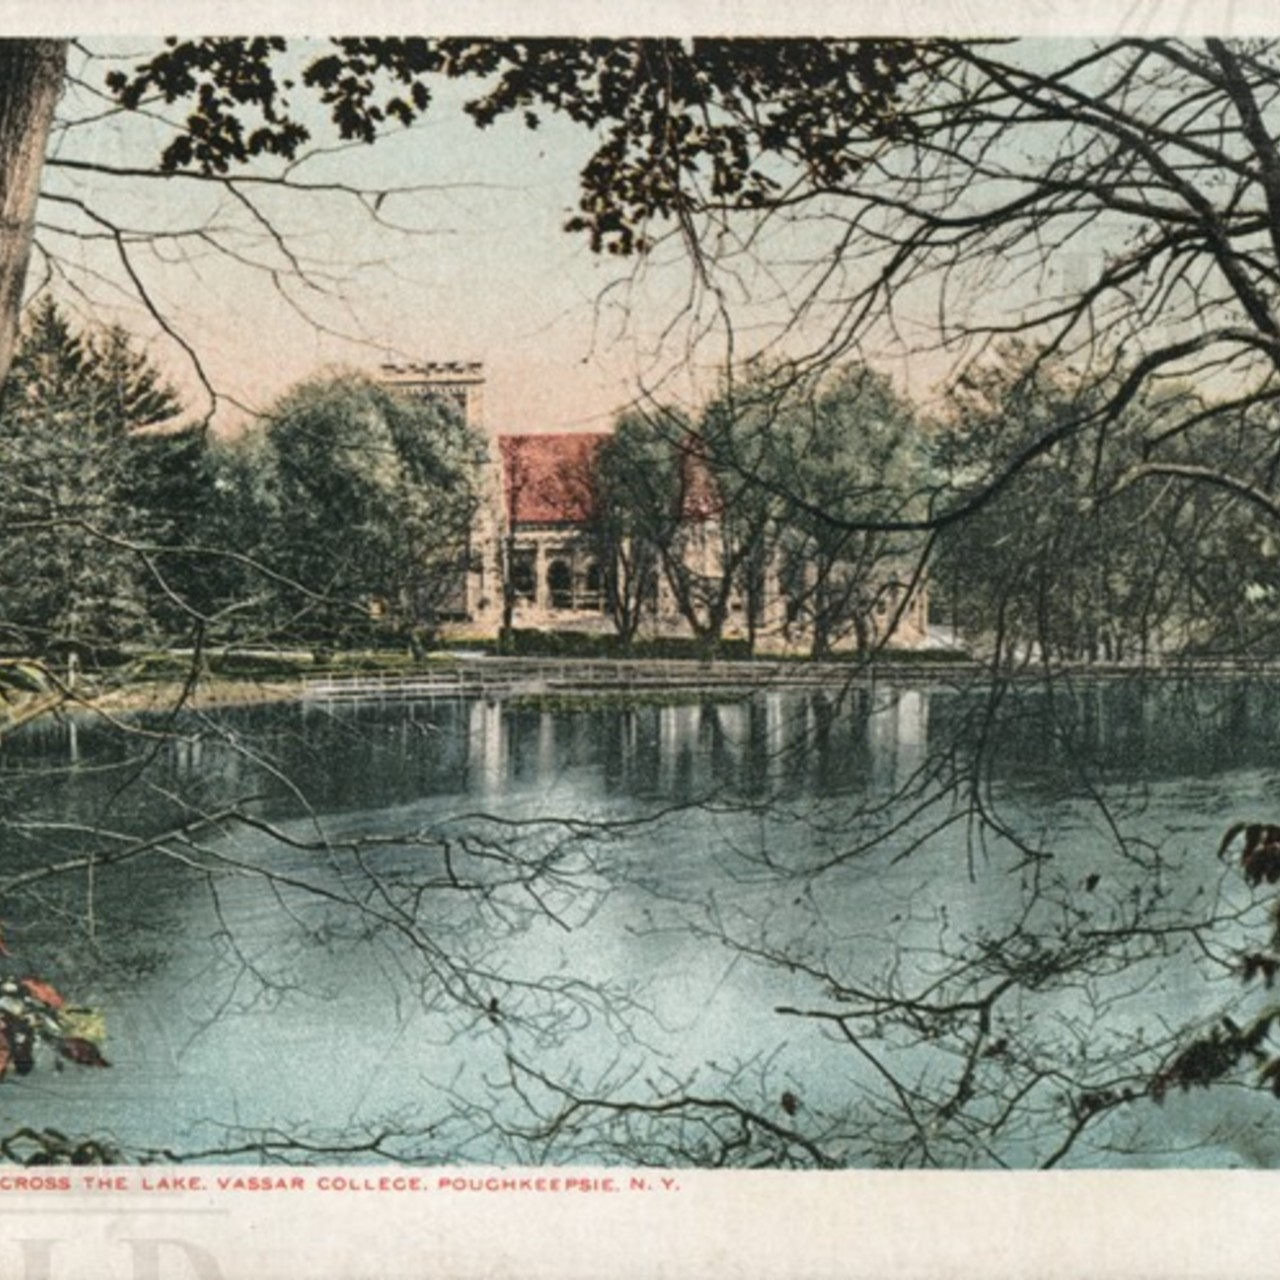 Chapel from Across the Lake, Vassar College